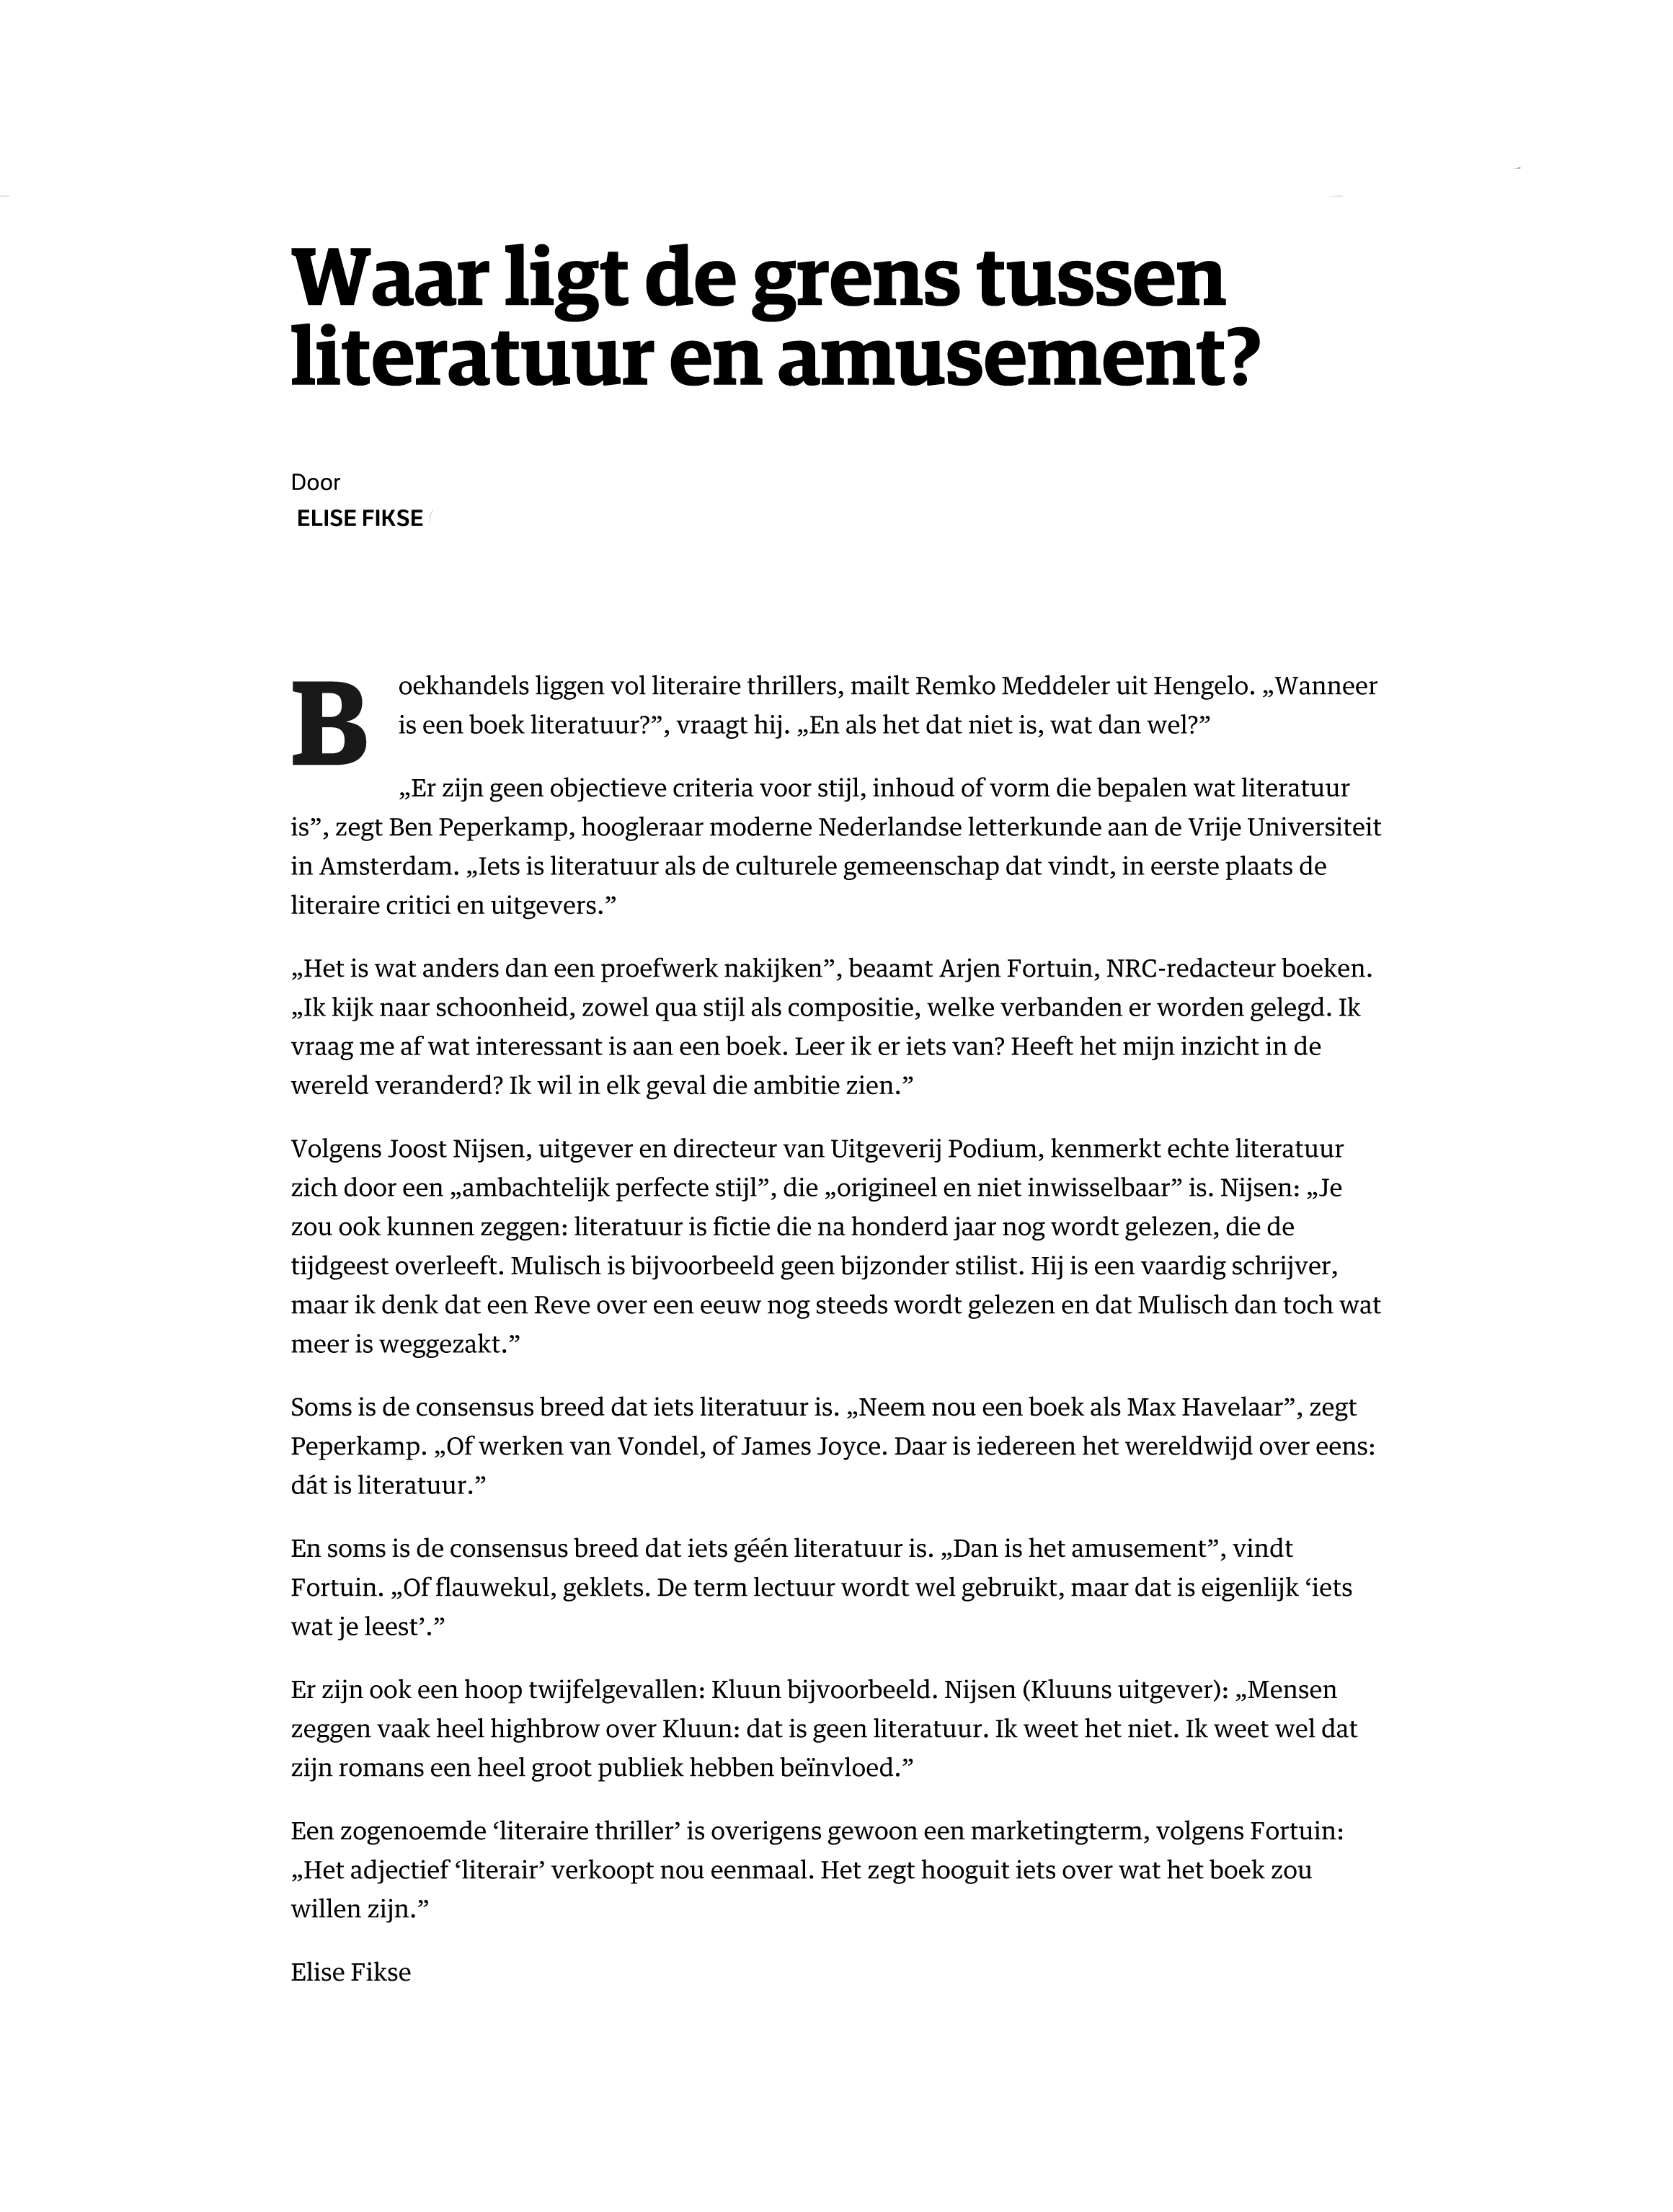 Next Question - Literatuur of Amusement